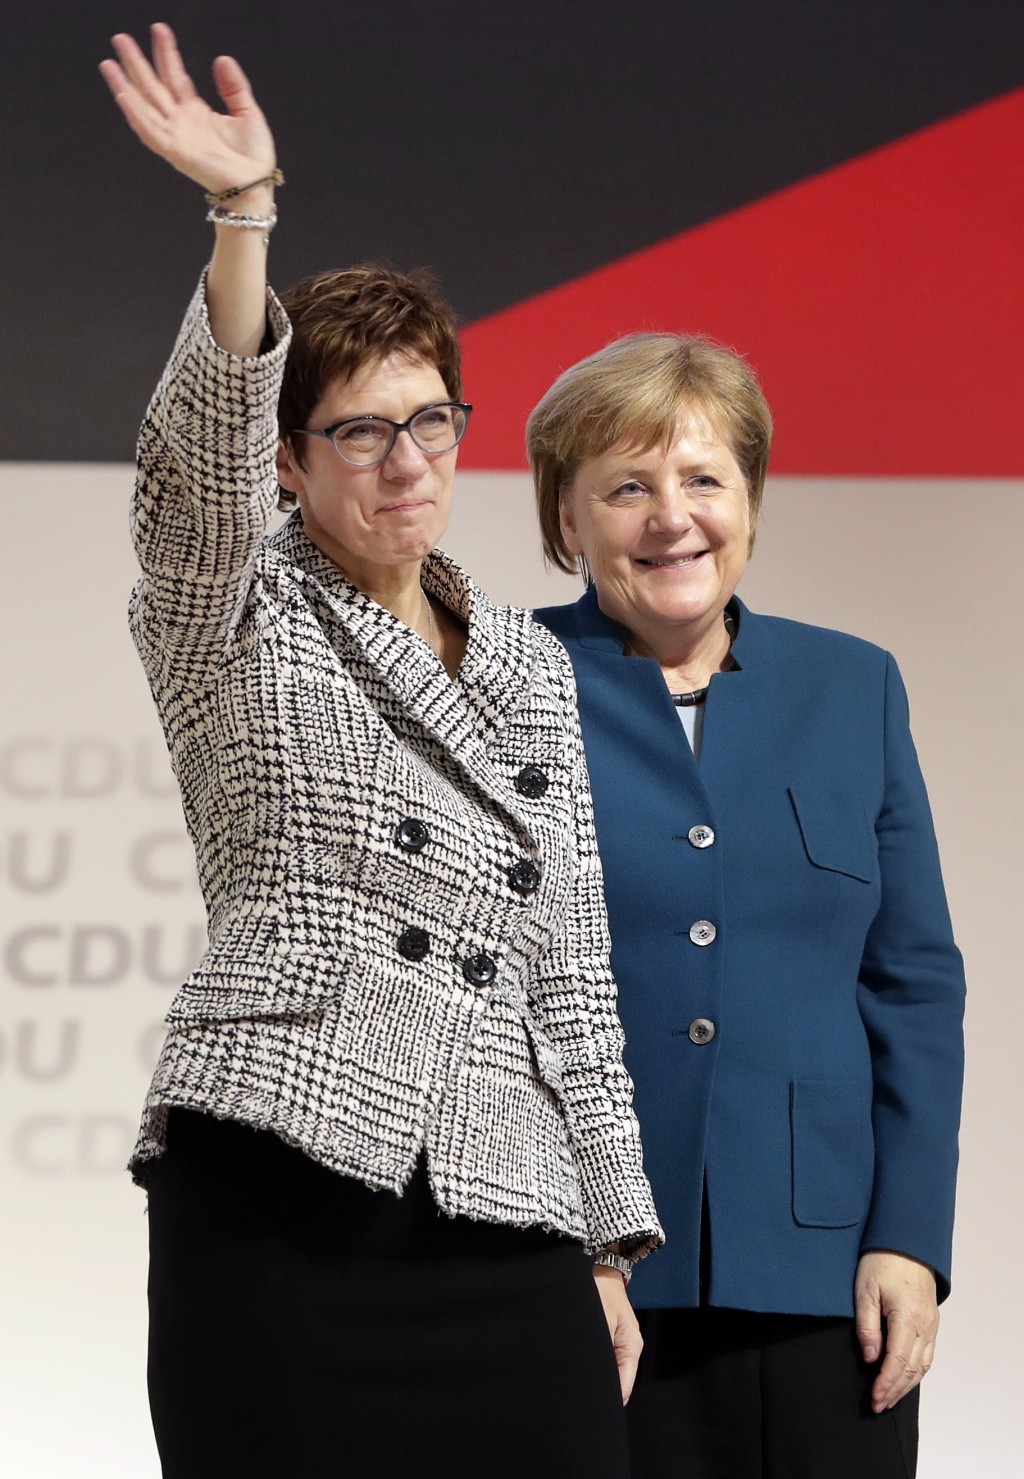 Newly elected CDU chairwoman Annegret Kramp-Karrenbauer, left, is flanked by German Chancellor Angela Merkel, right, as she waves during the party con